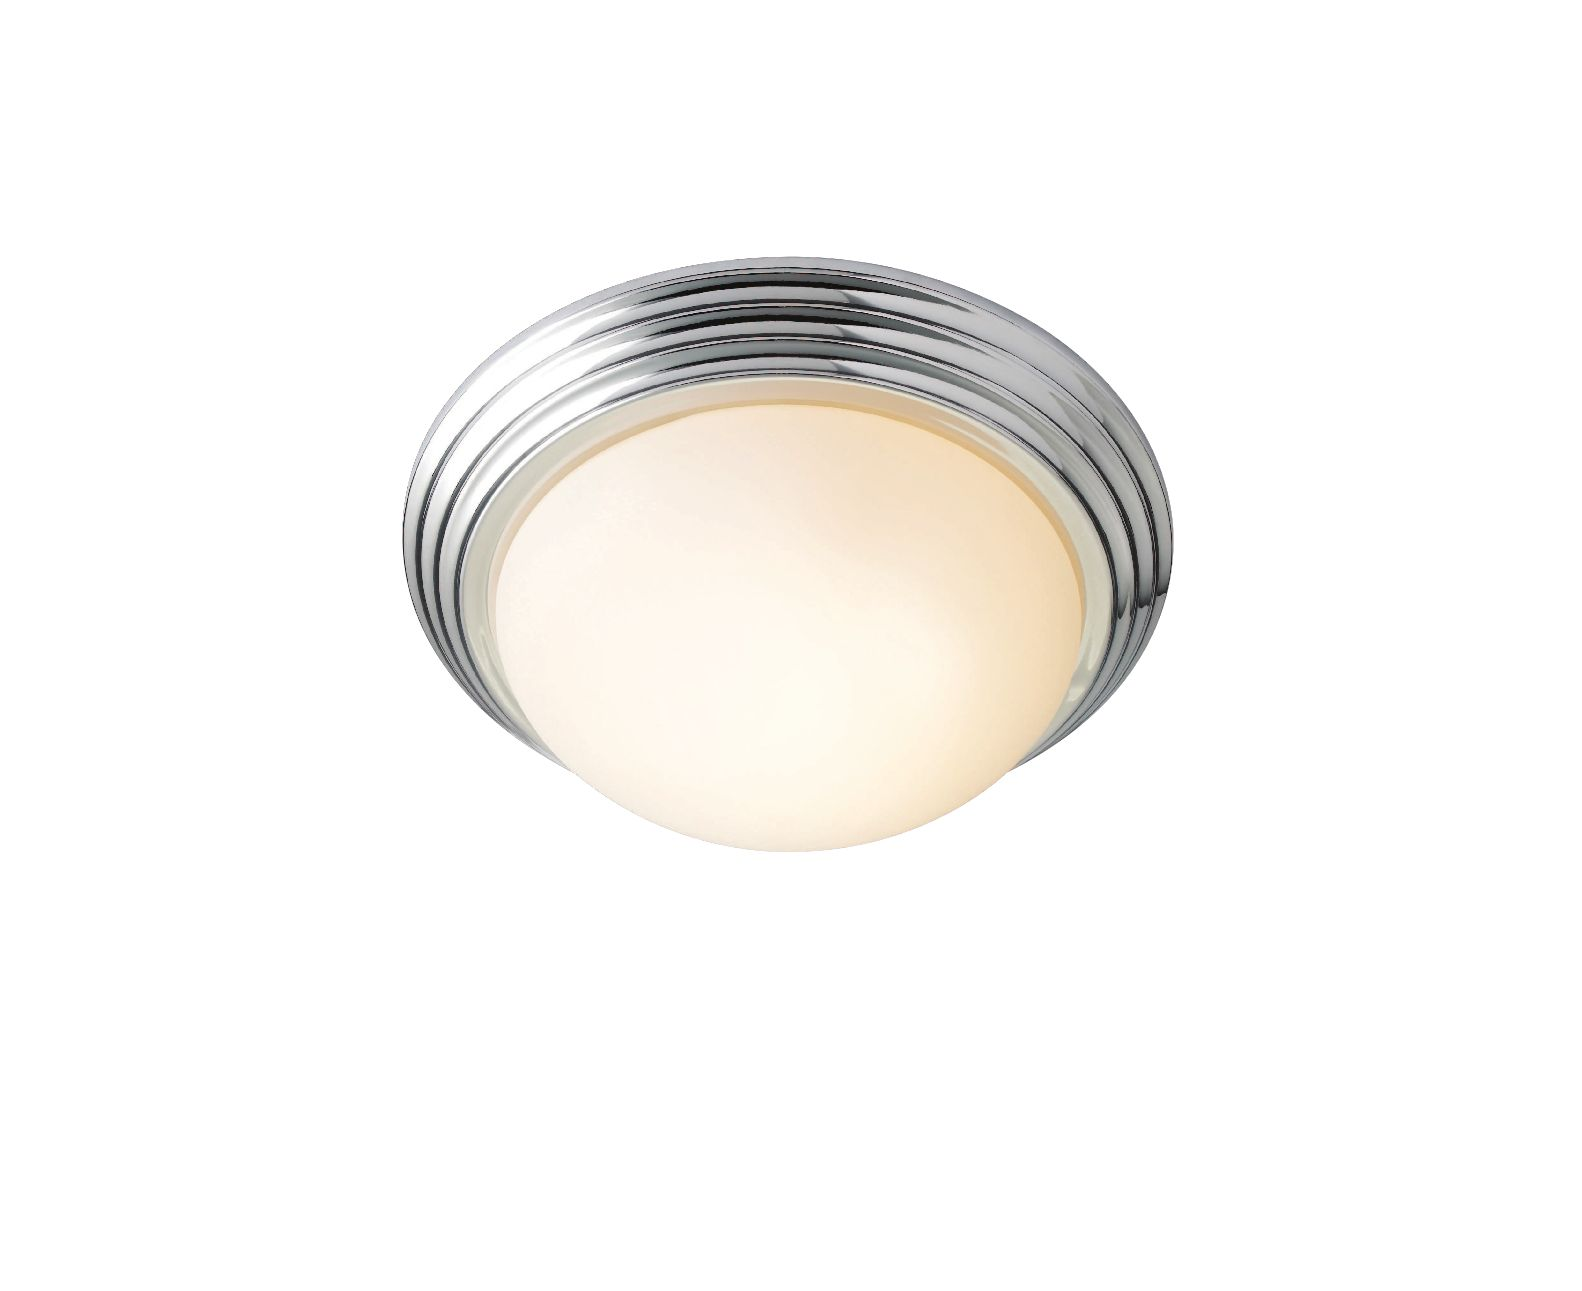 Ceiling Rose Light Fitting Wickes